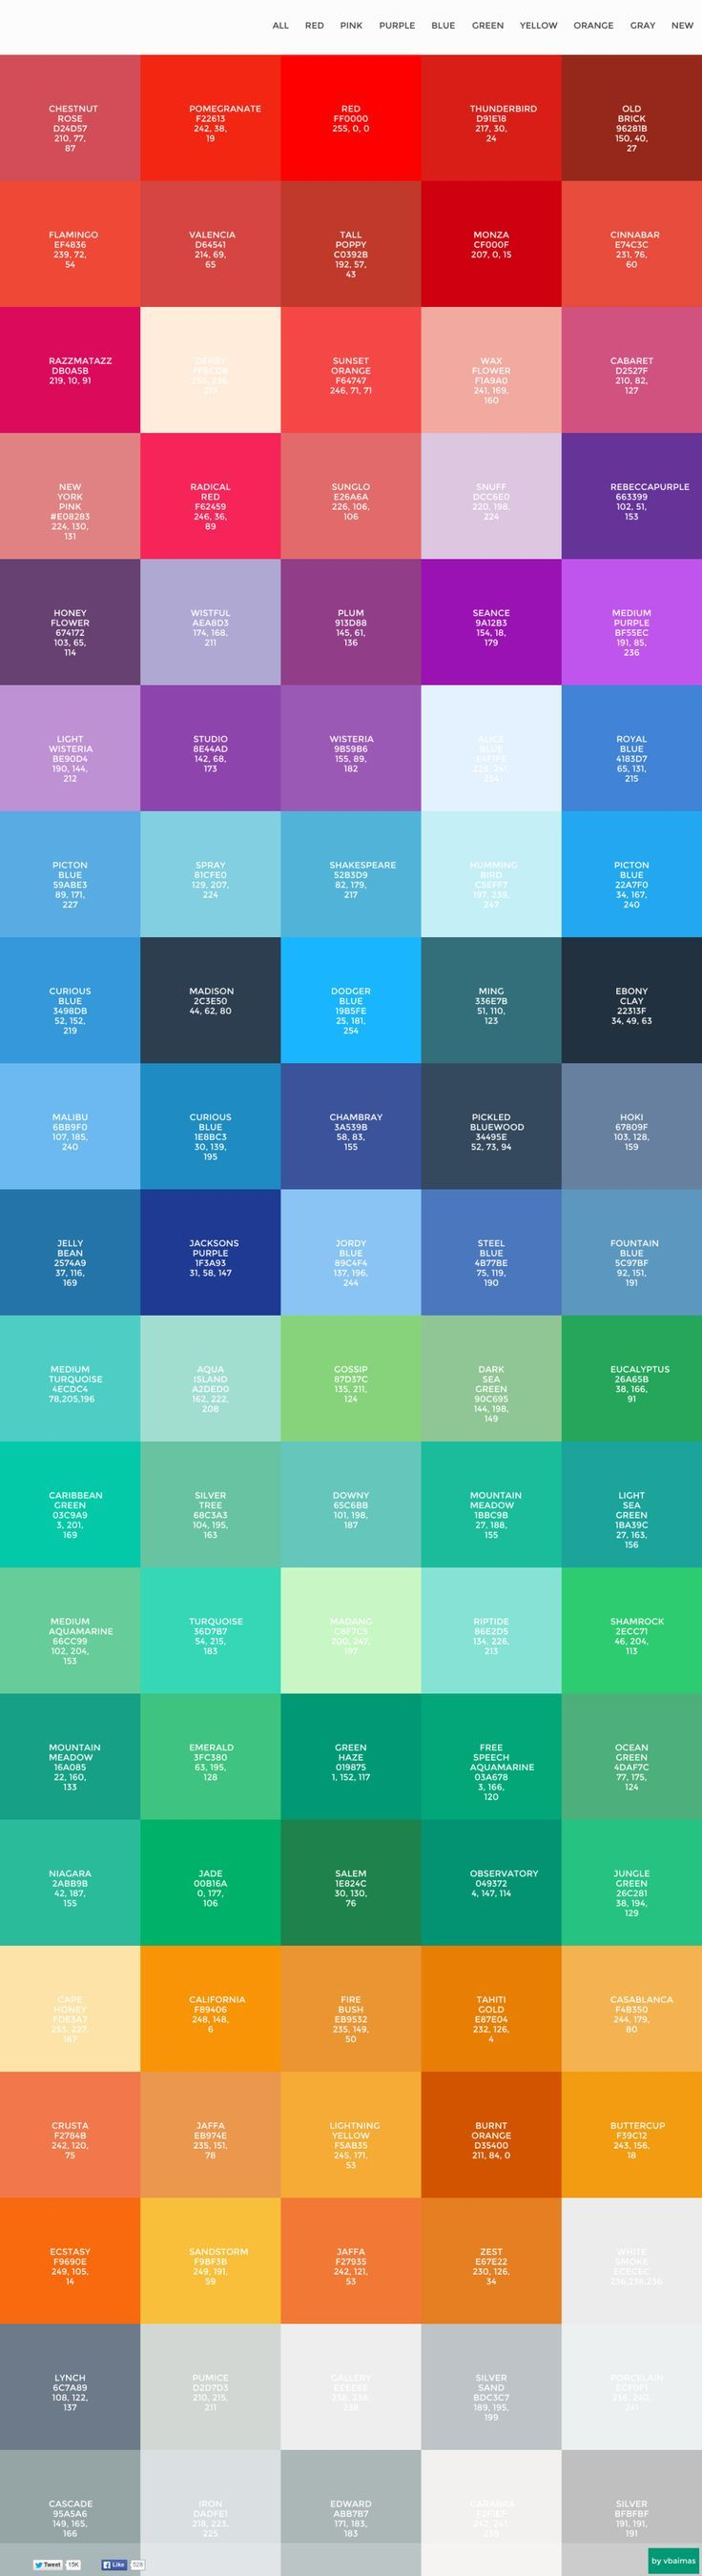 Flat Design Colors